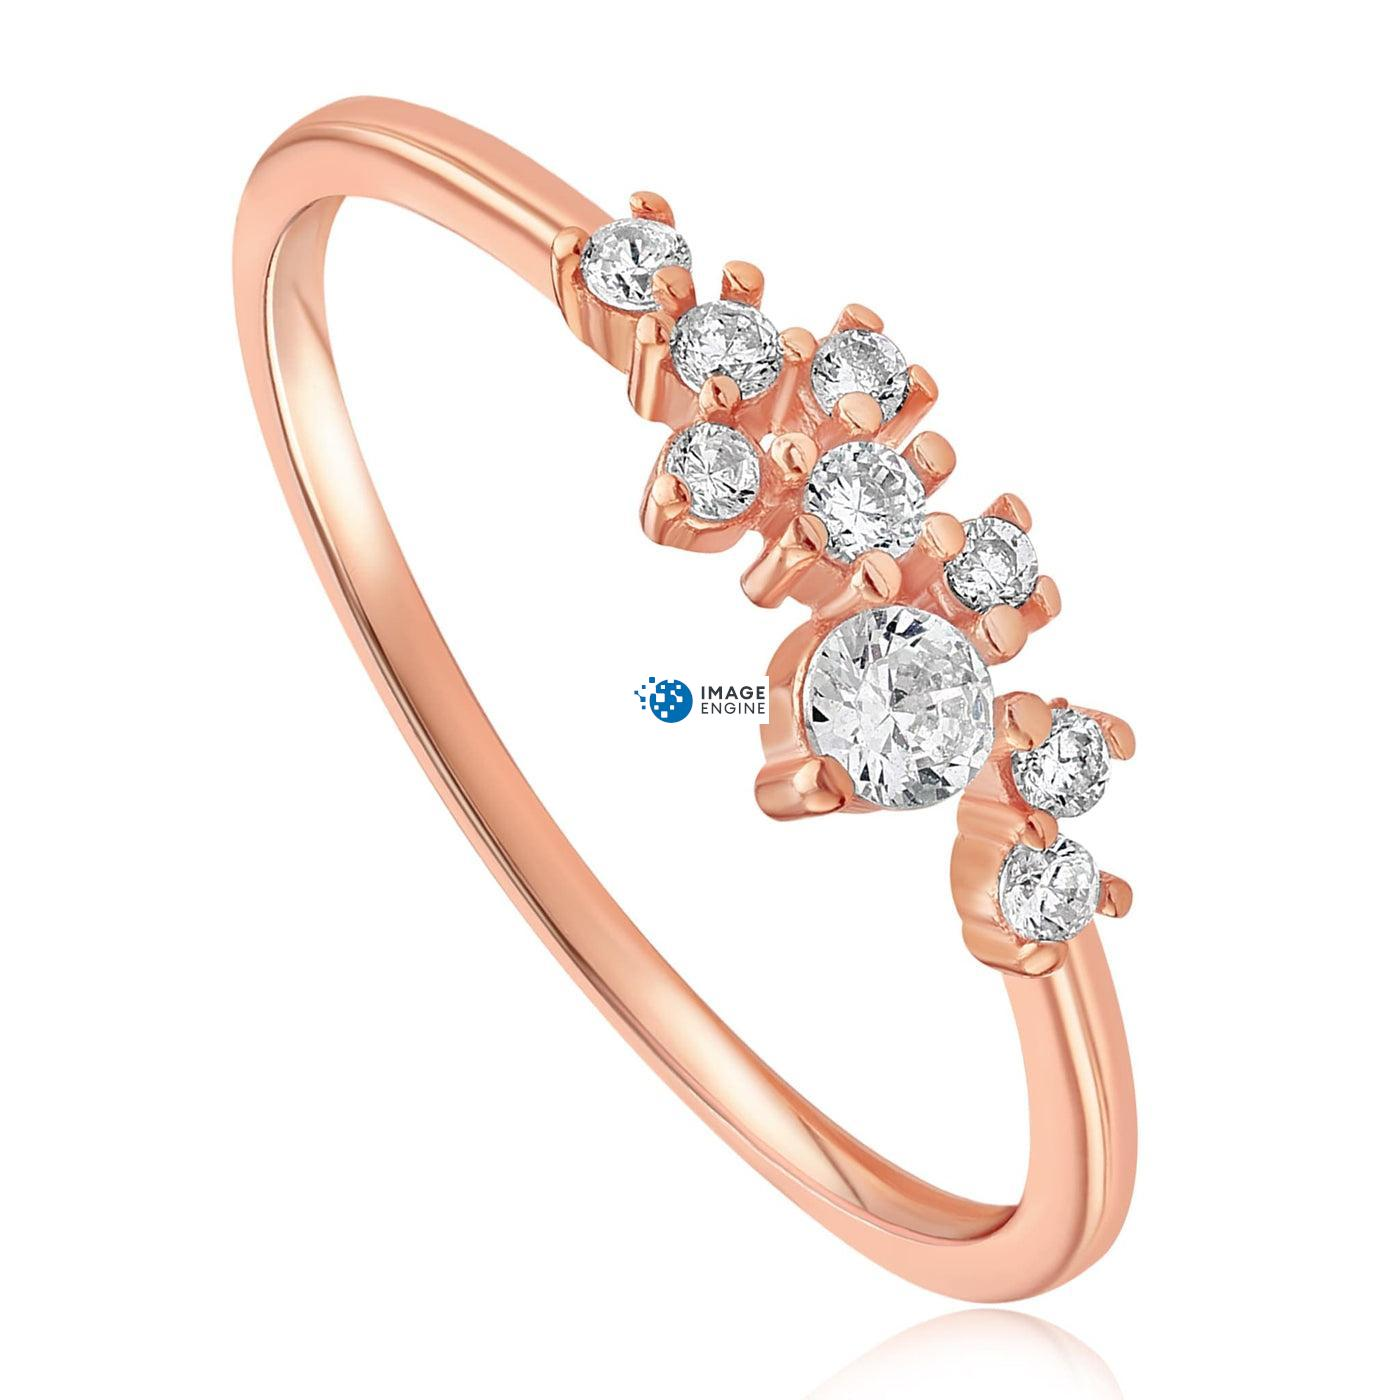 Sasha Sparkle Ring - Three Quarter View - 18K Rose Gold Vermeil